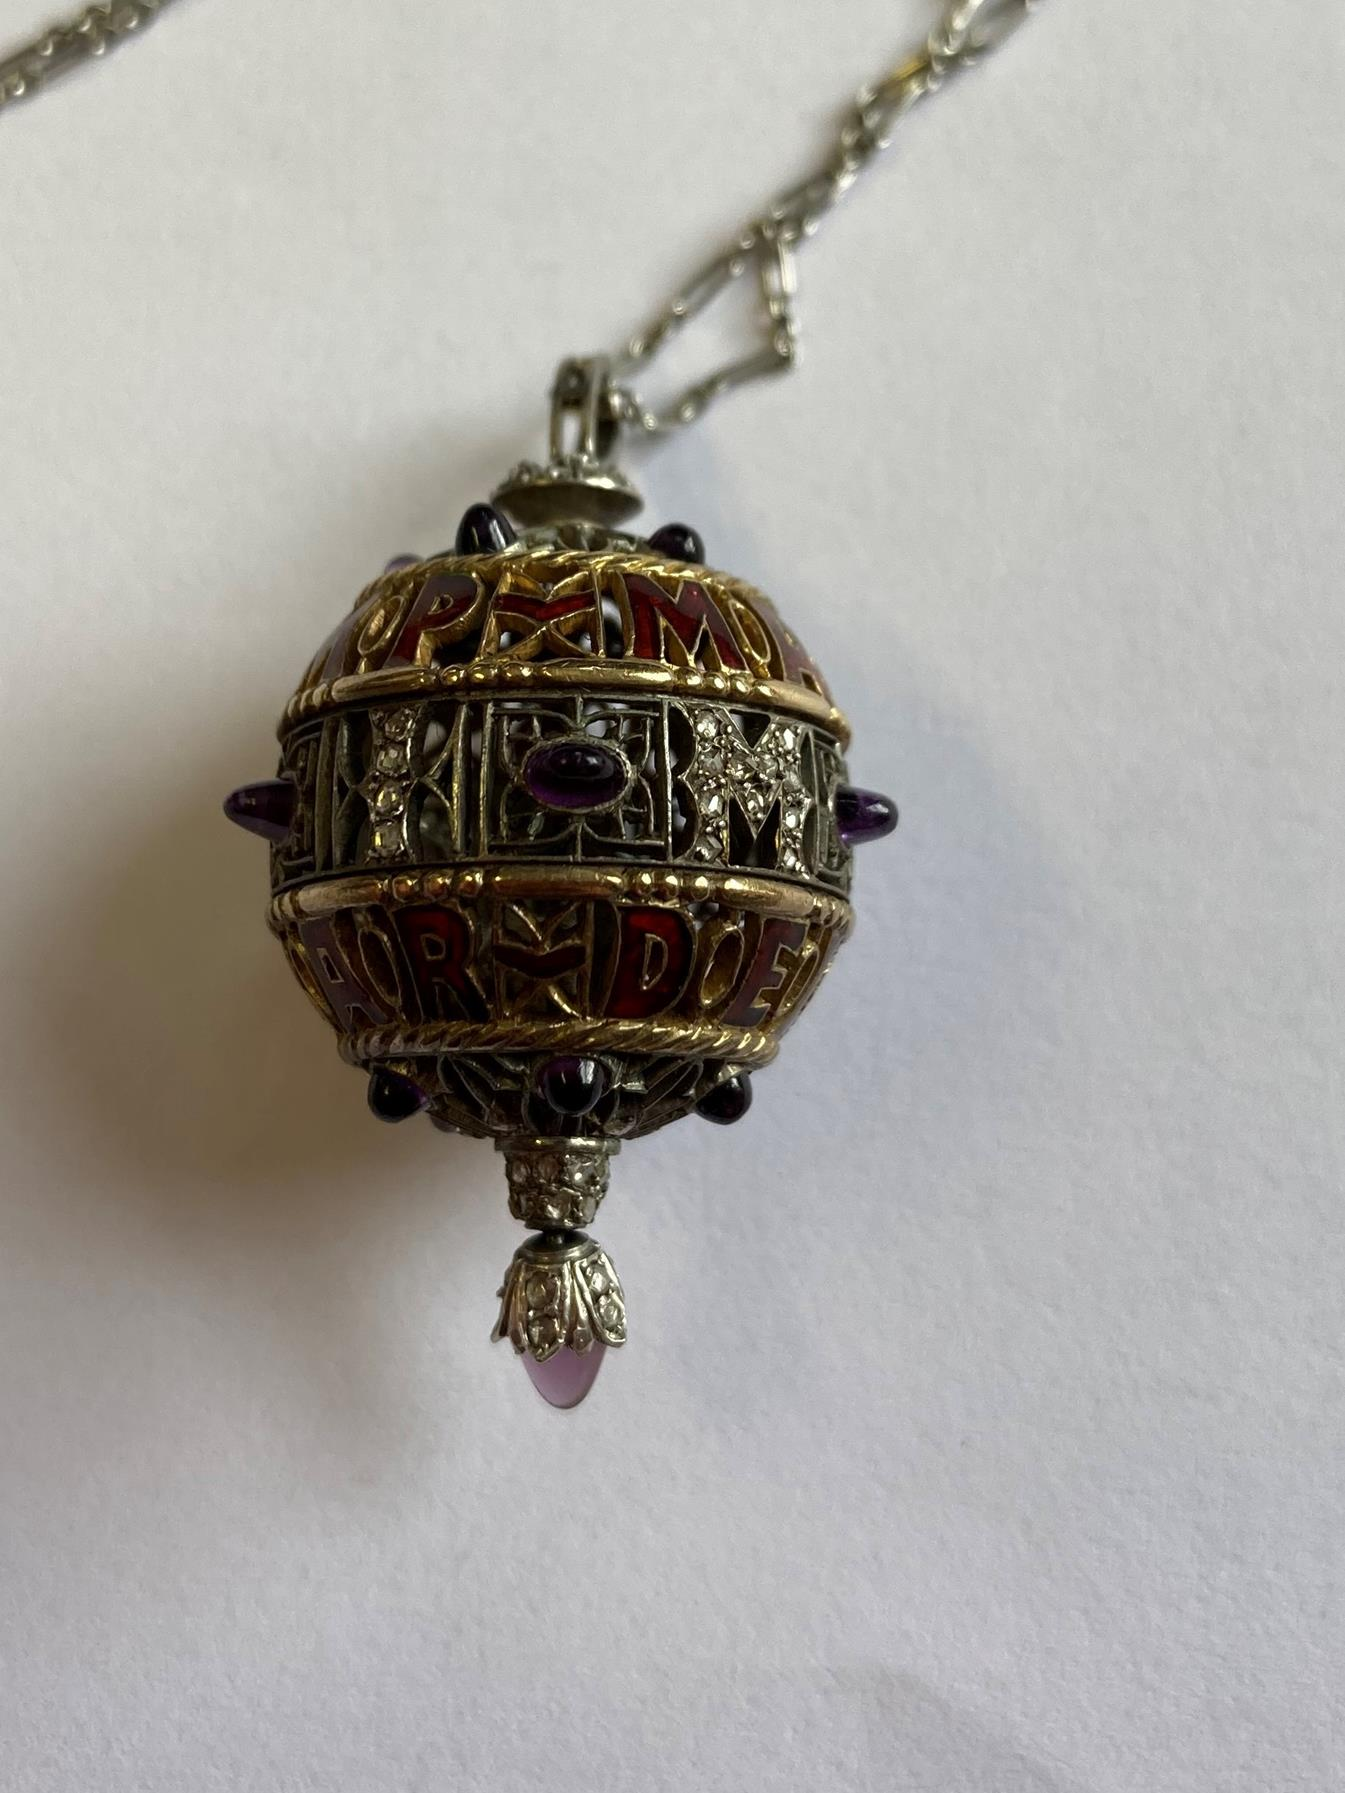 An Amethyst, Diamond and Enamel Pendant on Chain, 1911, the openwork ball with red enamel - Image 6 of 8